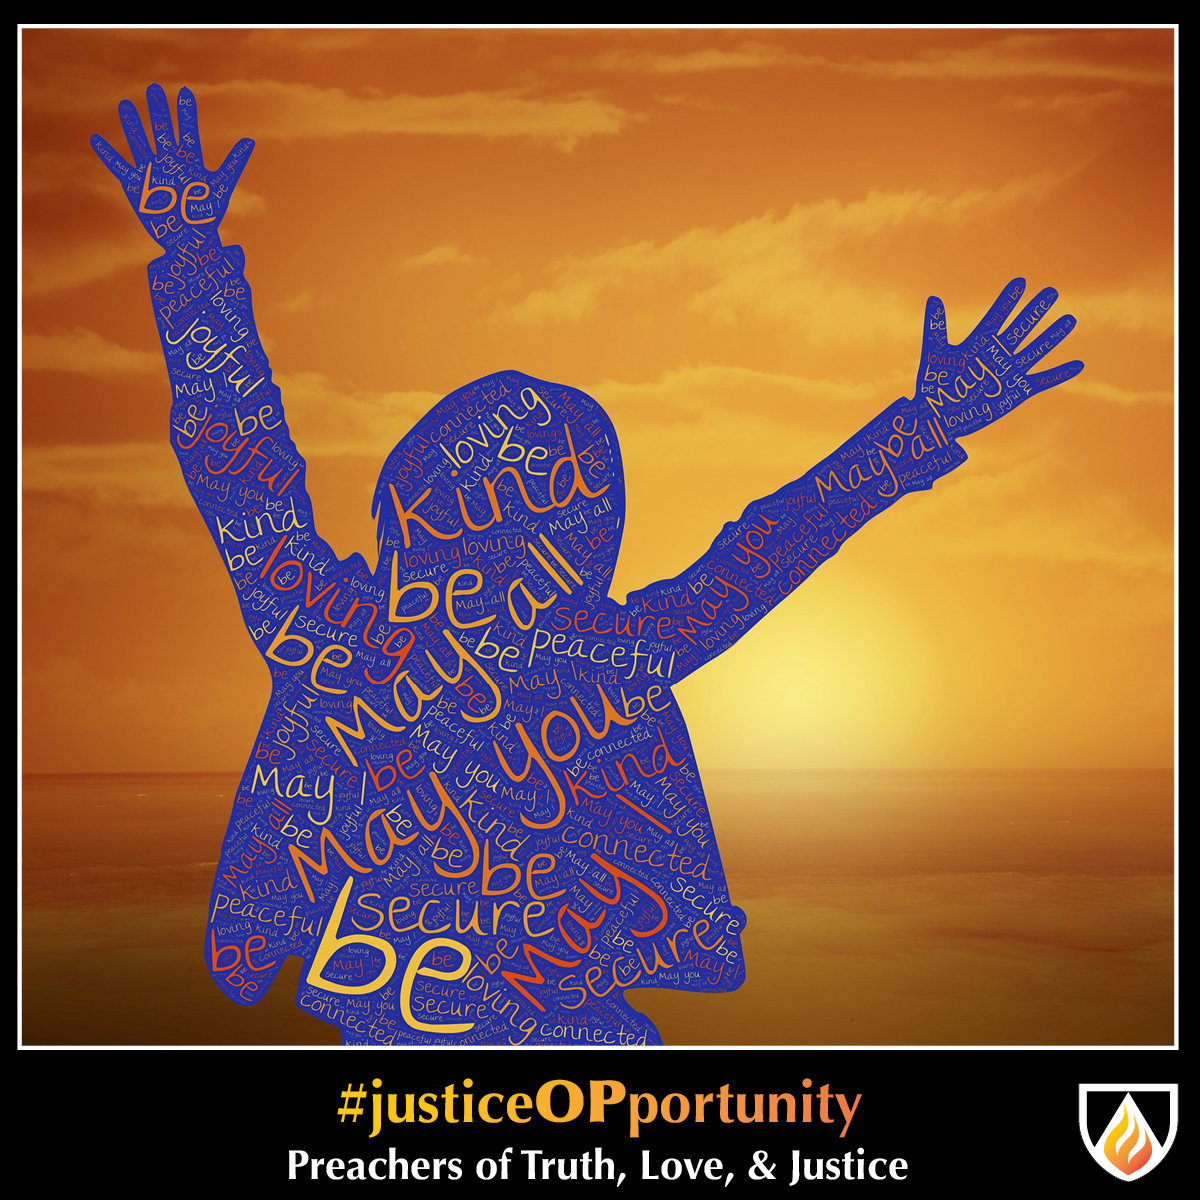 #justiceOPportunity Thursday: 05.21.20